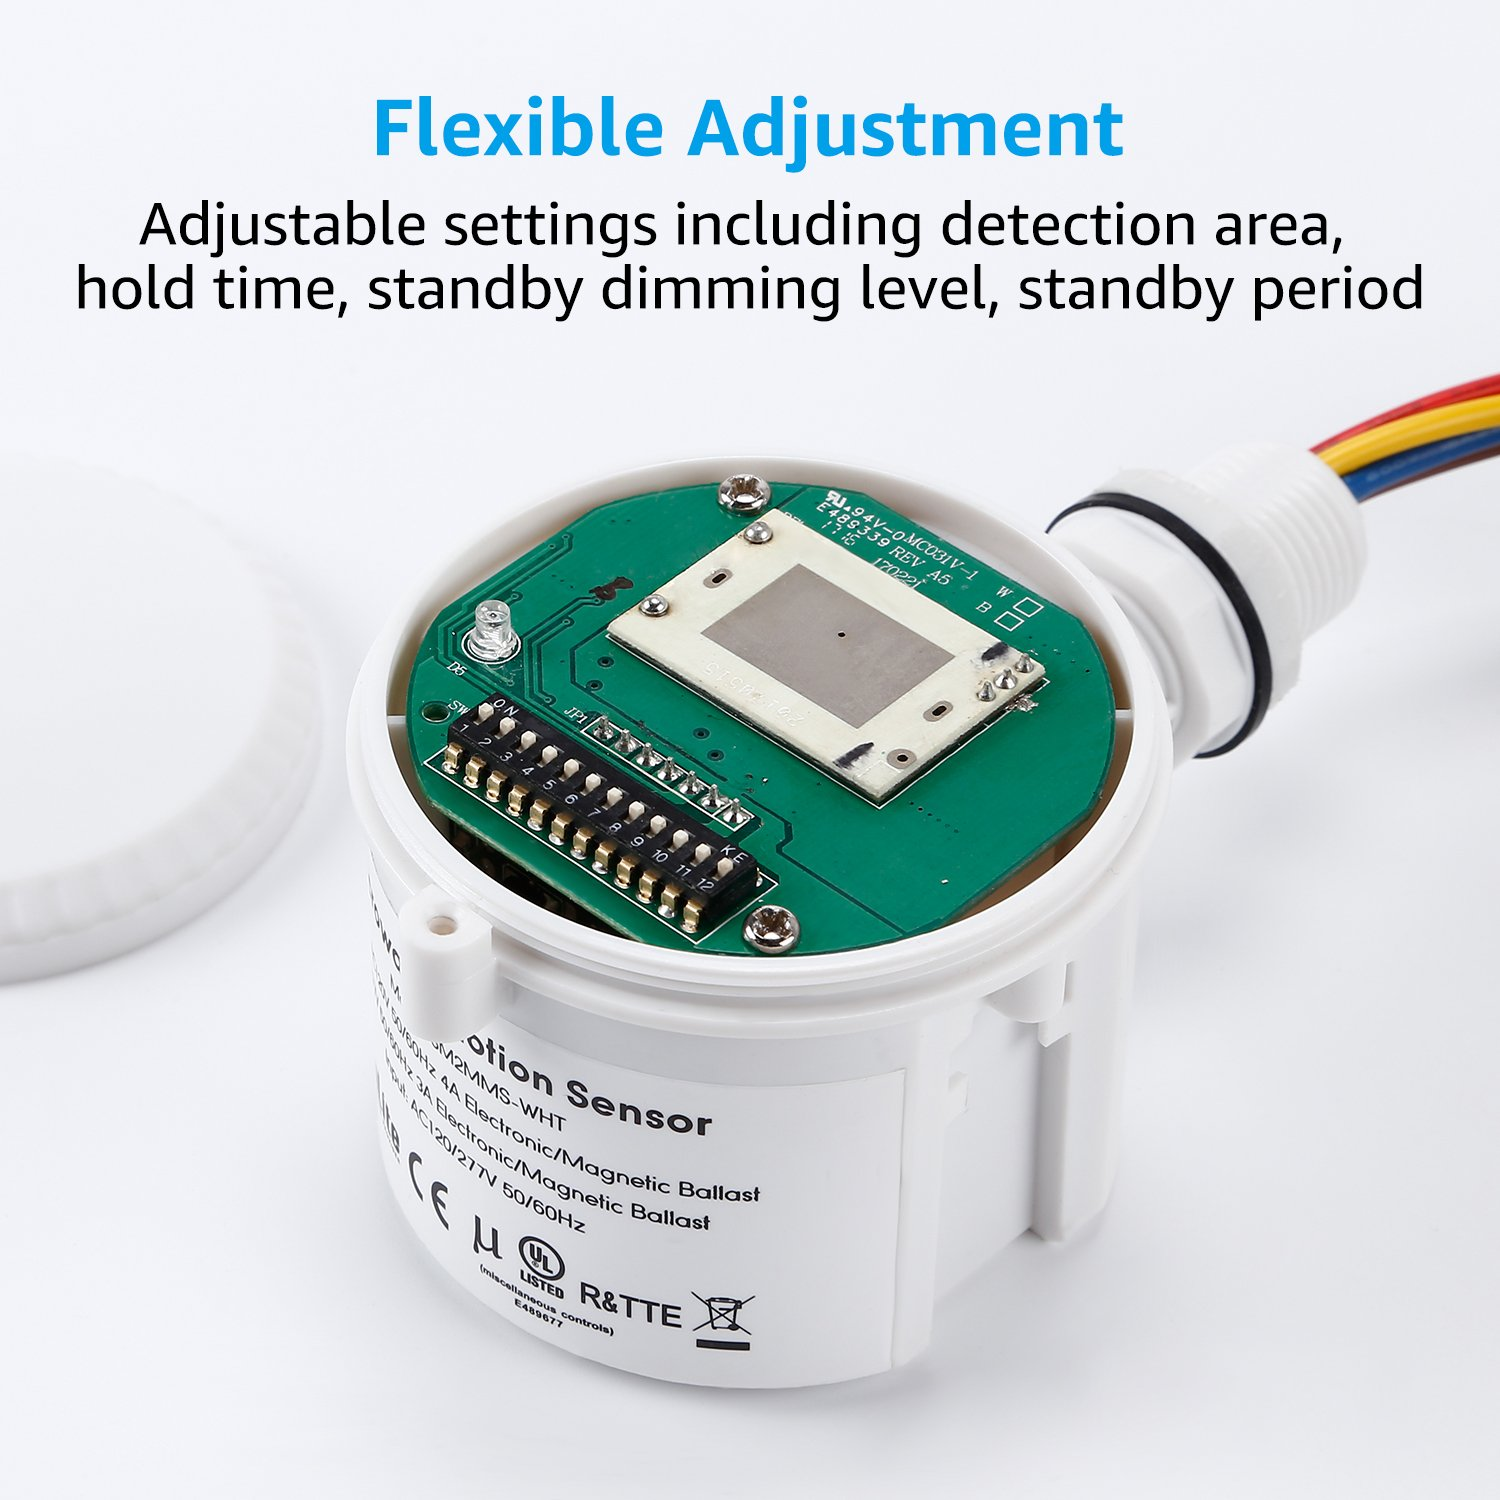 Adjustable Features LEONLITE Microwave Motion Sensor Attachment for High Bay Fixture 360/° Detection UL-Listed Commercial Grade Sensor